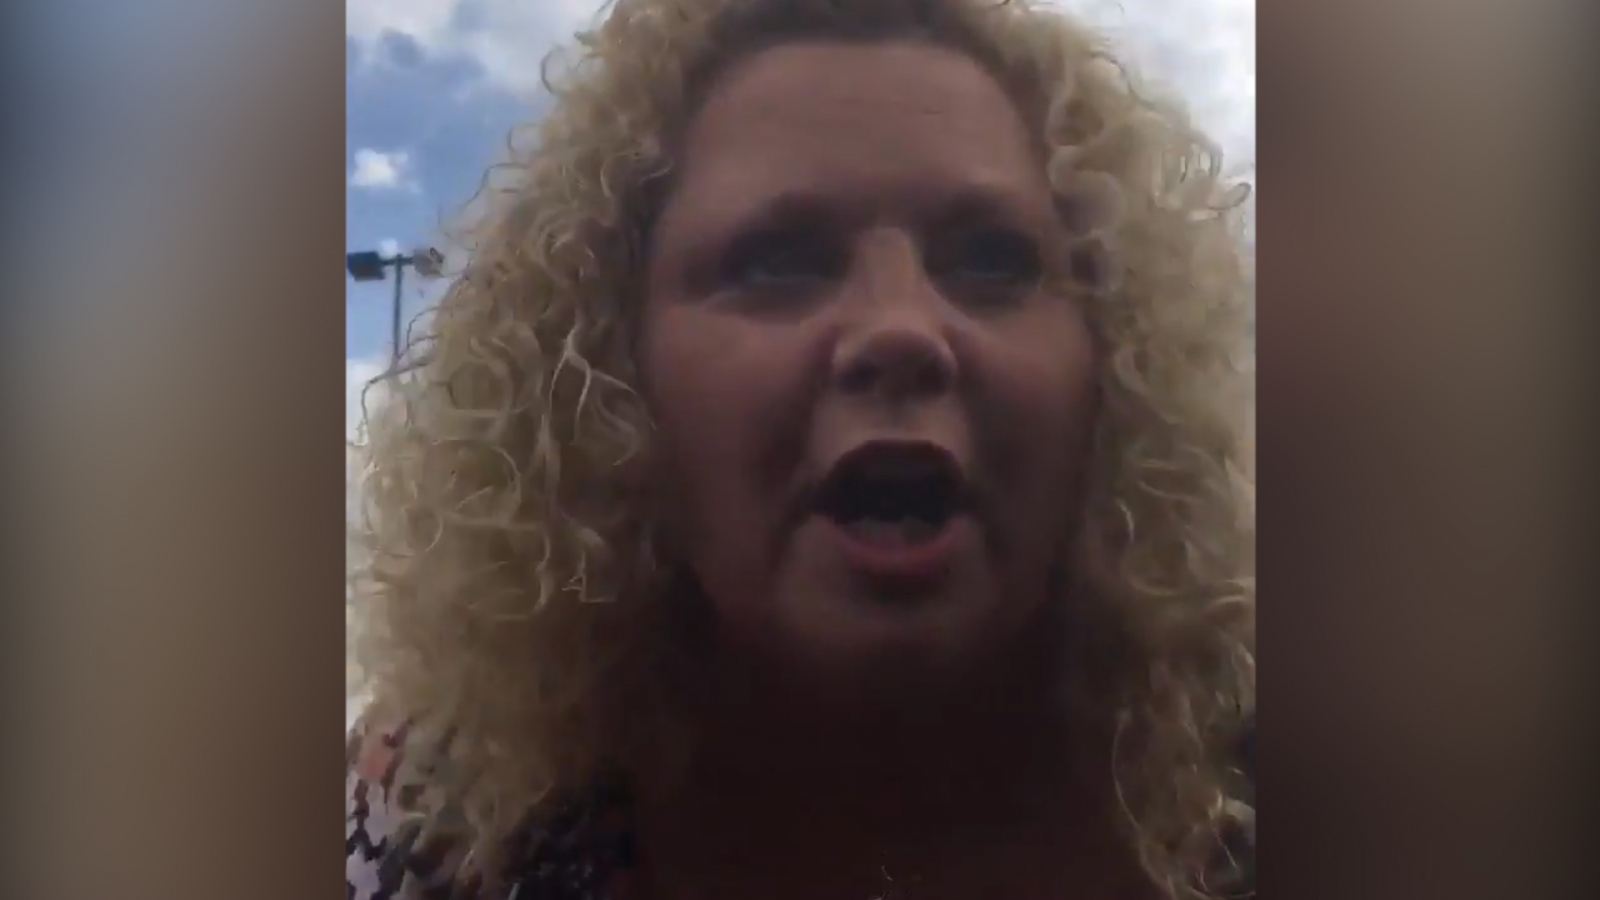 'We're going to kill every one of you f*****g Muslims': Woman filmed racially abusing American Somali women